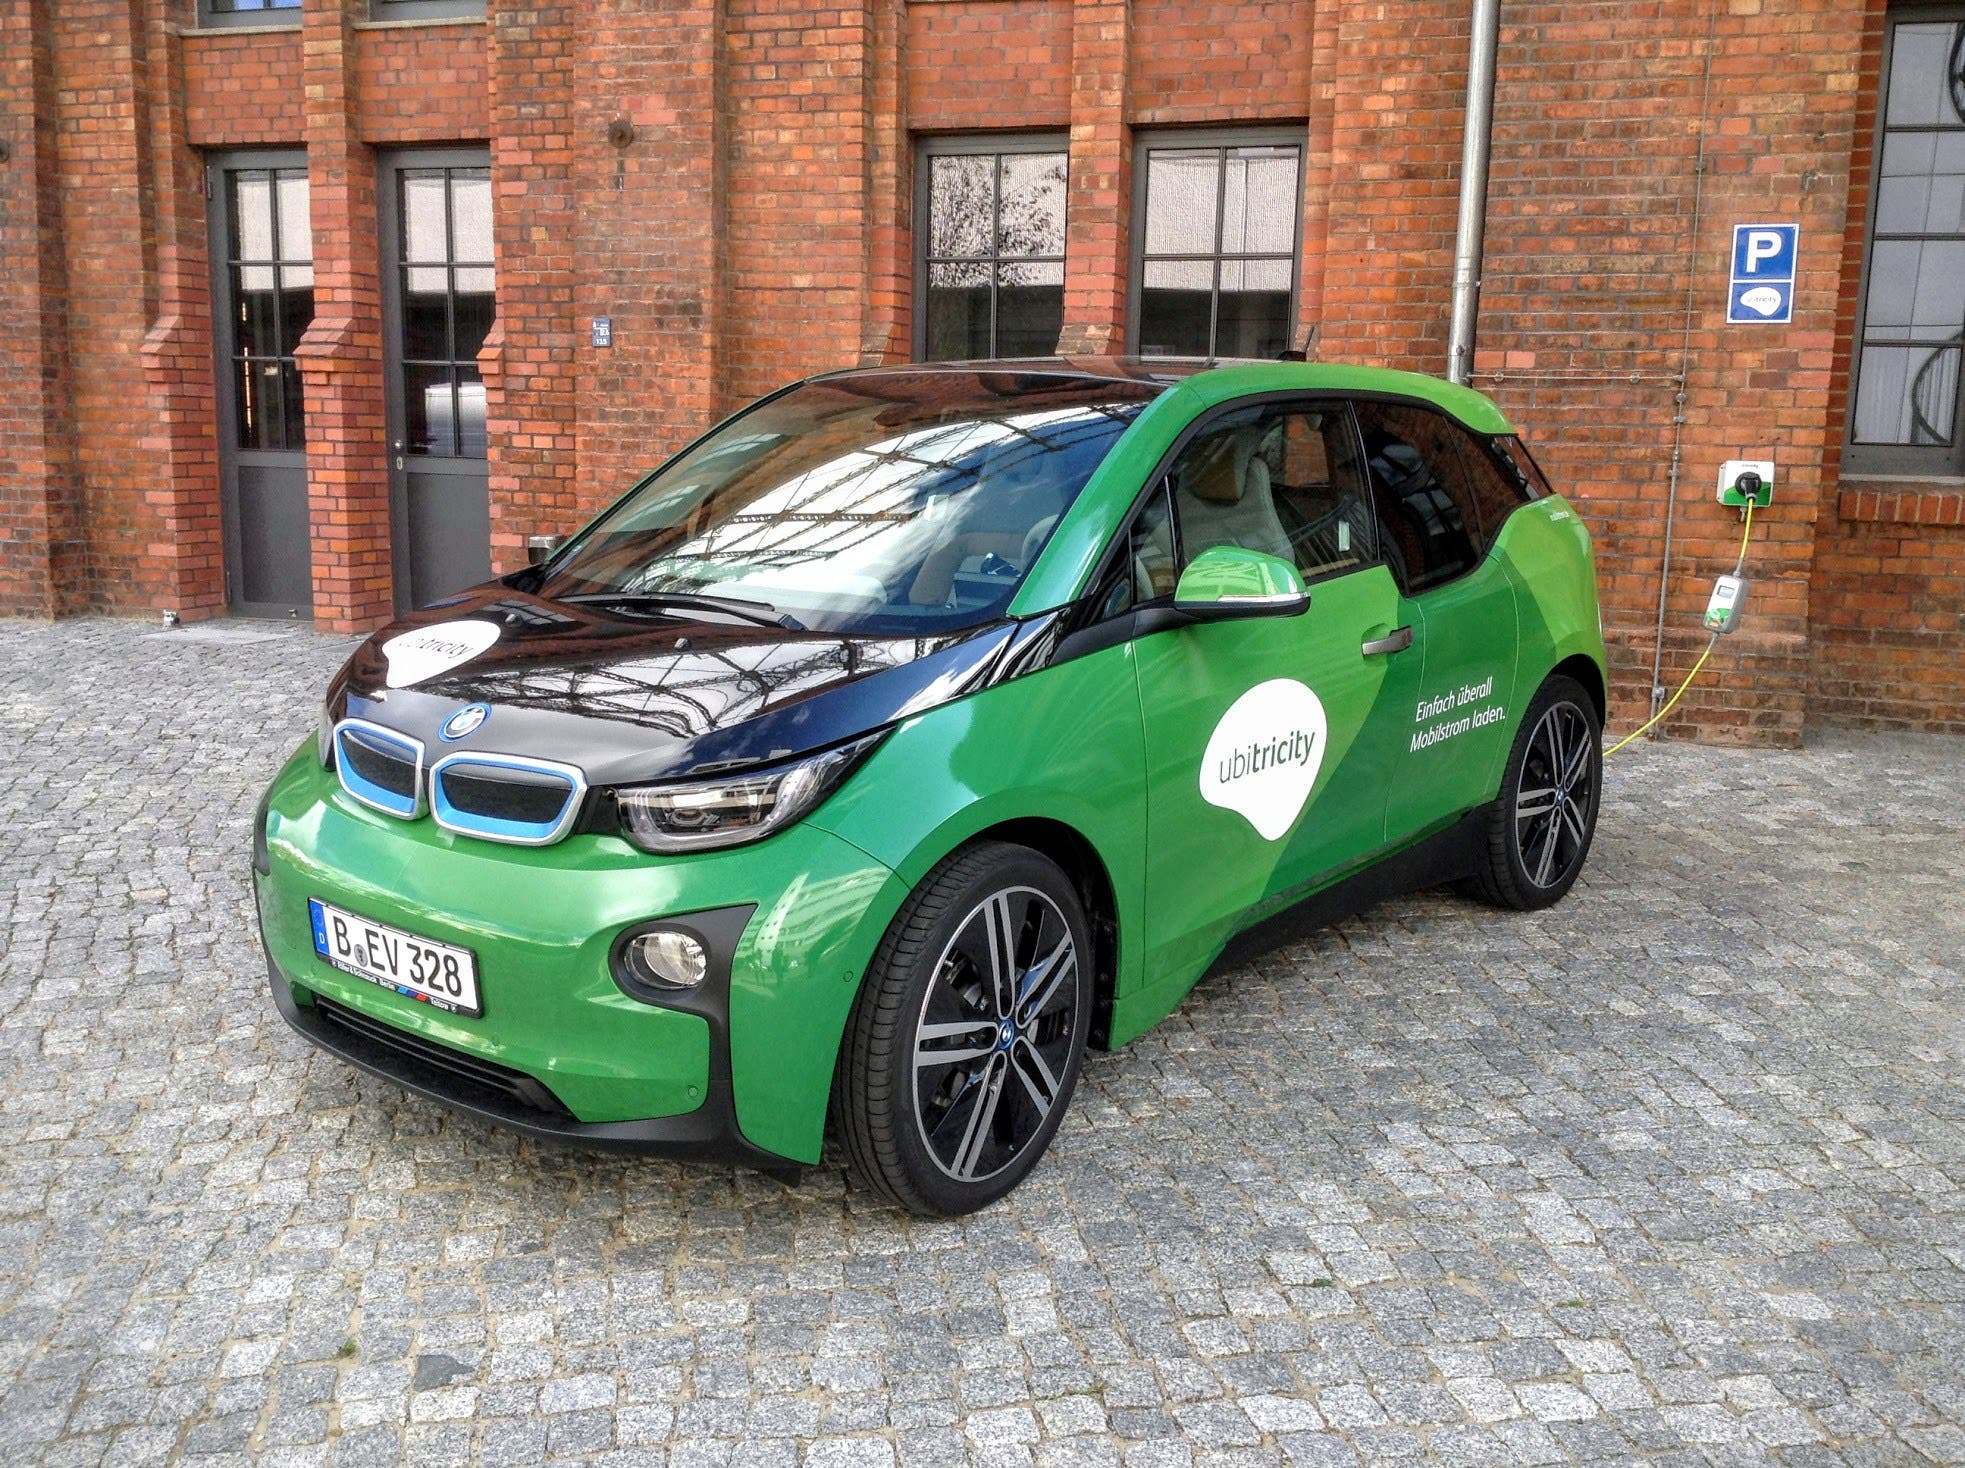 41% Prefer an Electric Vehicle (But How Reliable are the Numbers?)